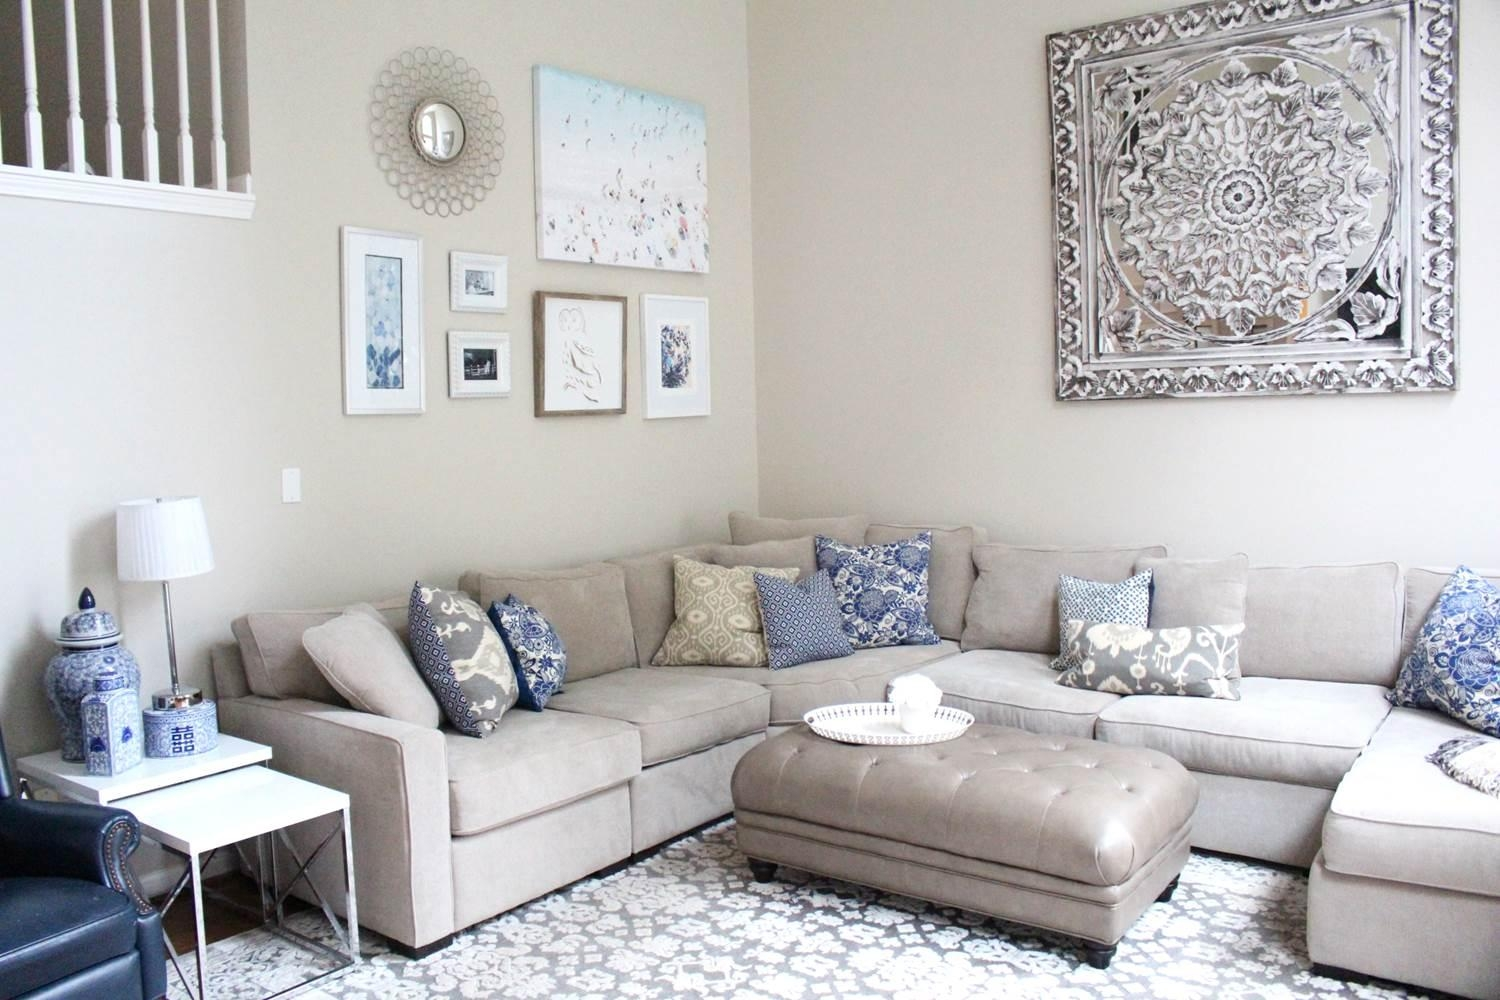 Wall Art For The Living Room – Modern House Within Wall Arts For Living Room (View 11 of 20)